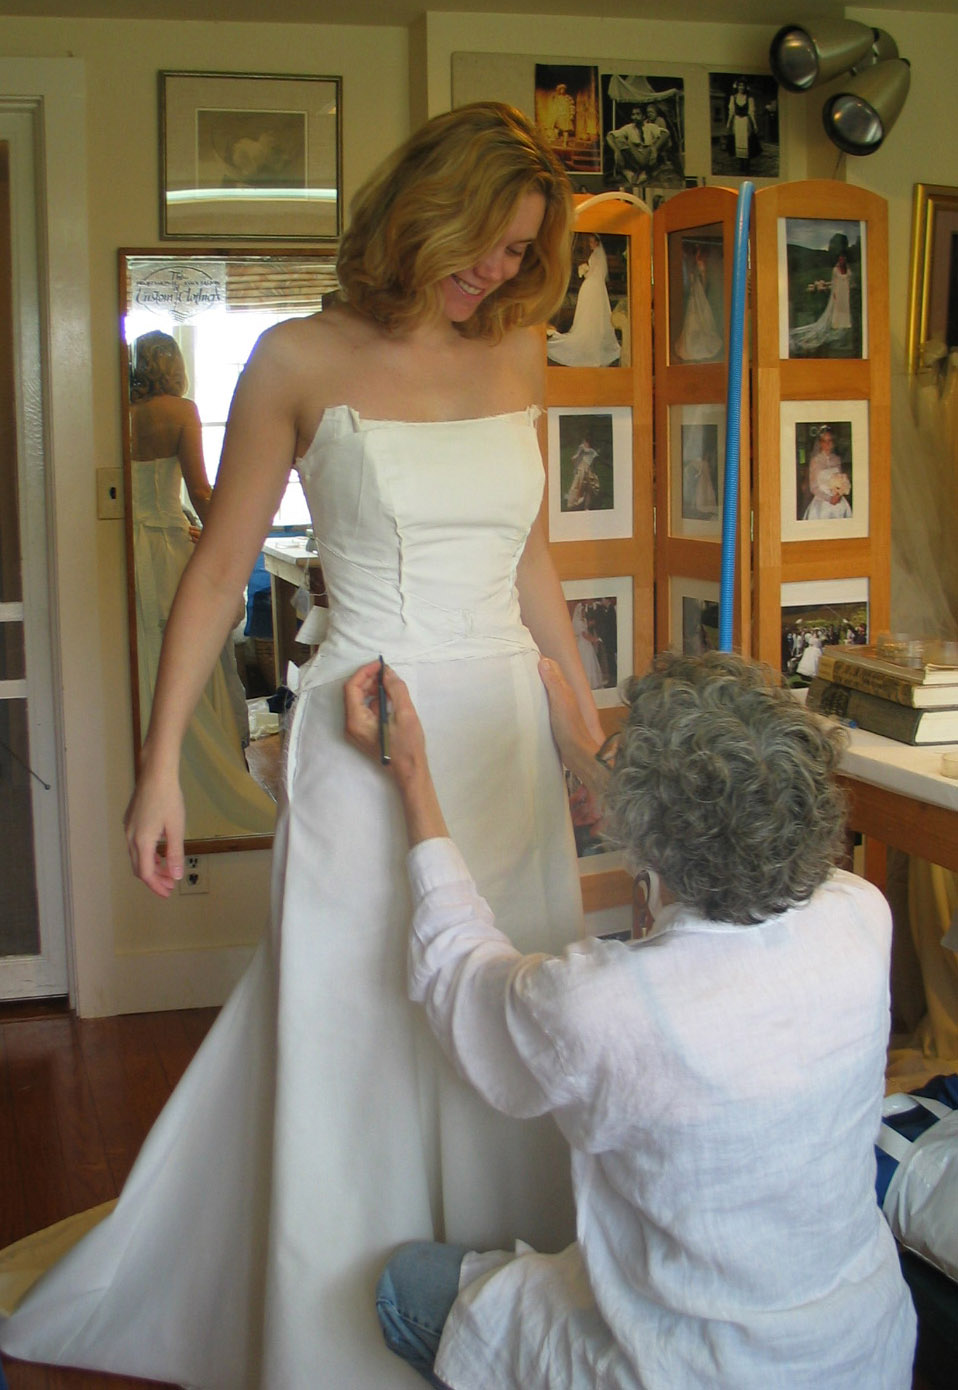 Vermont Handmade Wedding Gowns & Custom Dresses